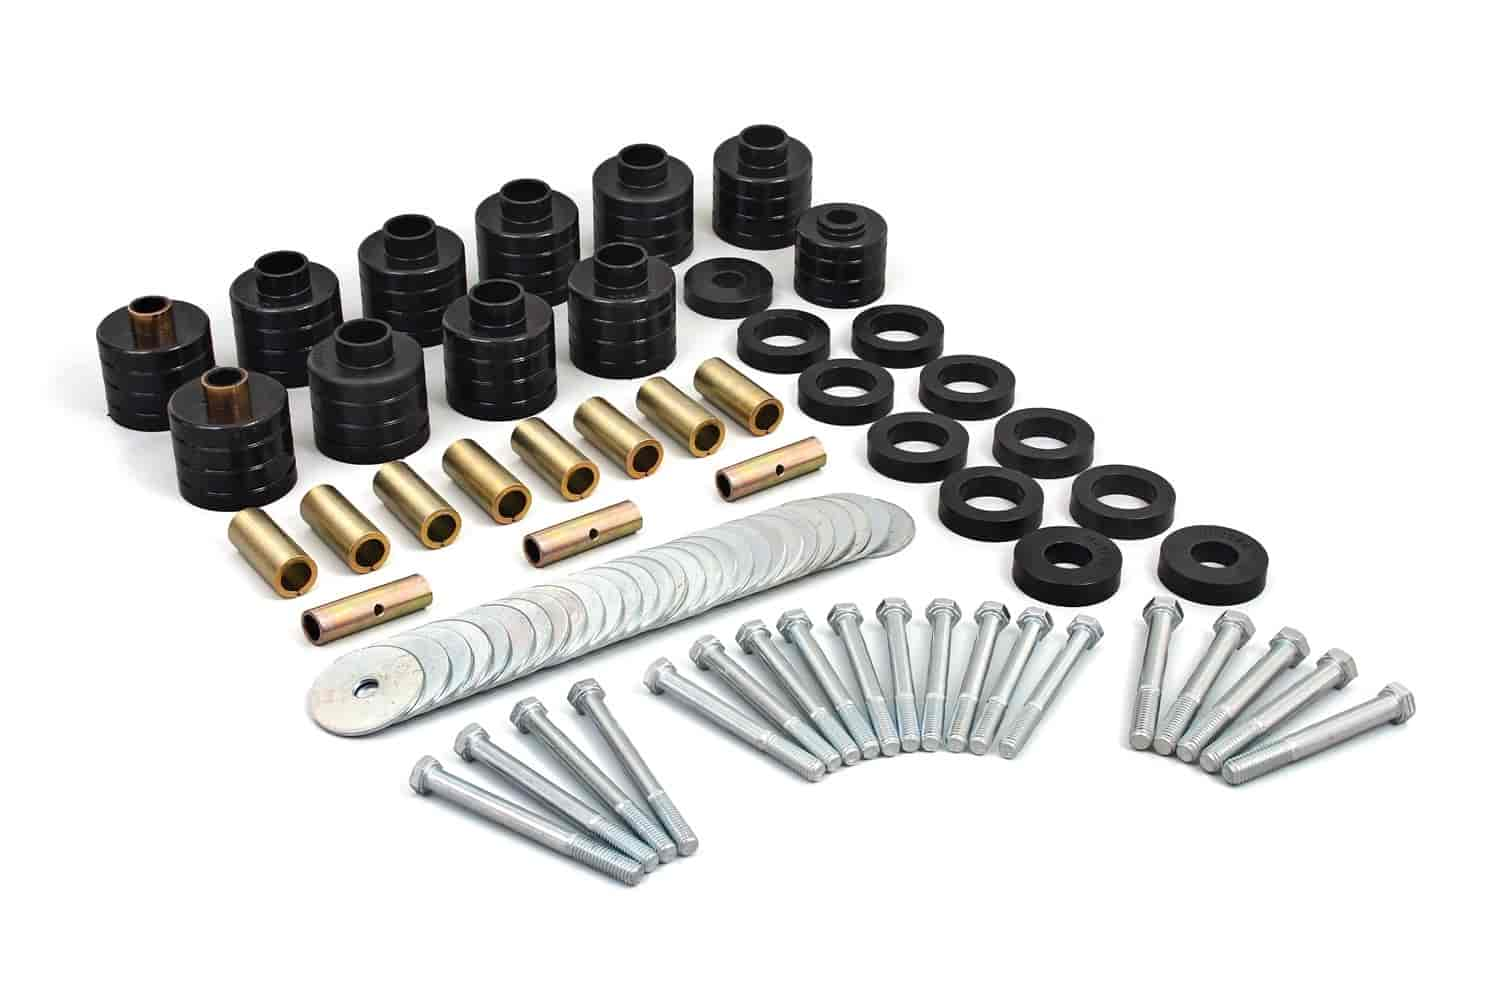 Daystar KJ04502BK - Daystar Body Mount Bushing Kits